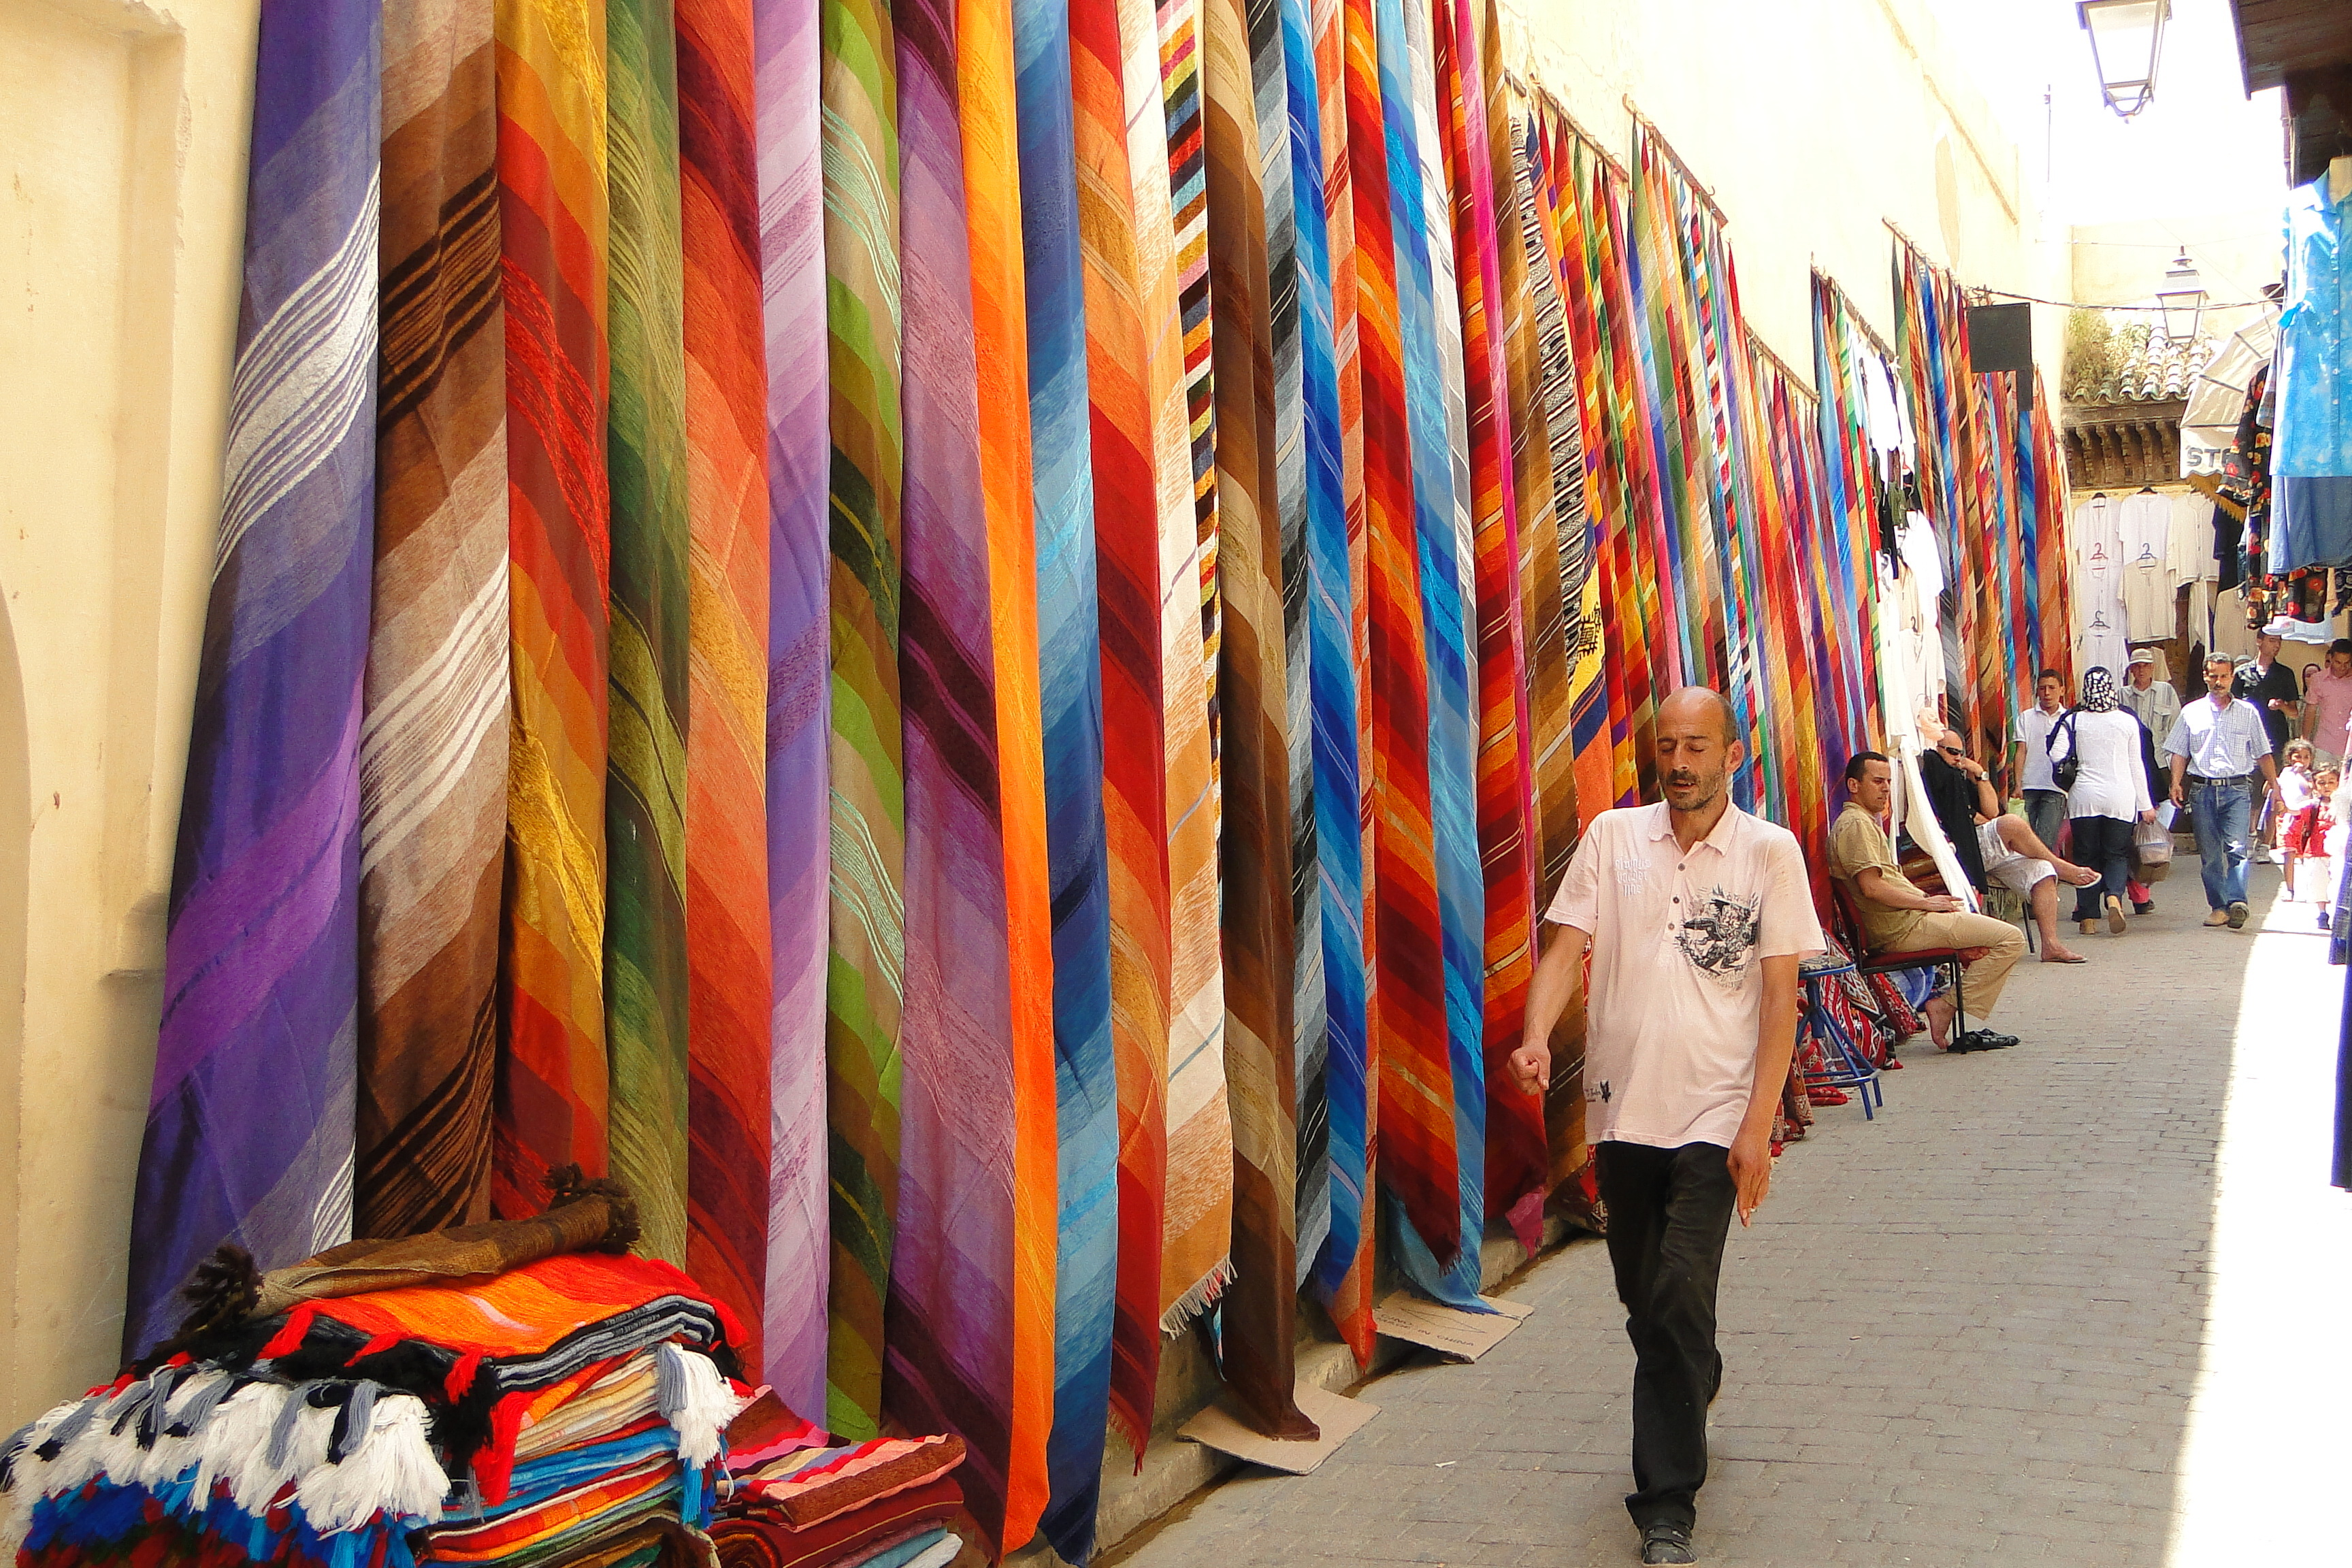 File Colorful Cloth for Sale - Medina (Old City) - Fez - Morocco.jpg ... 2bac539a2cb